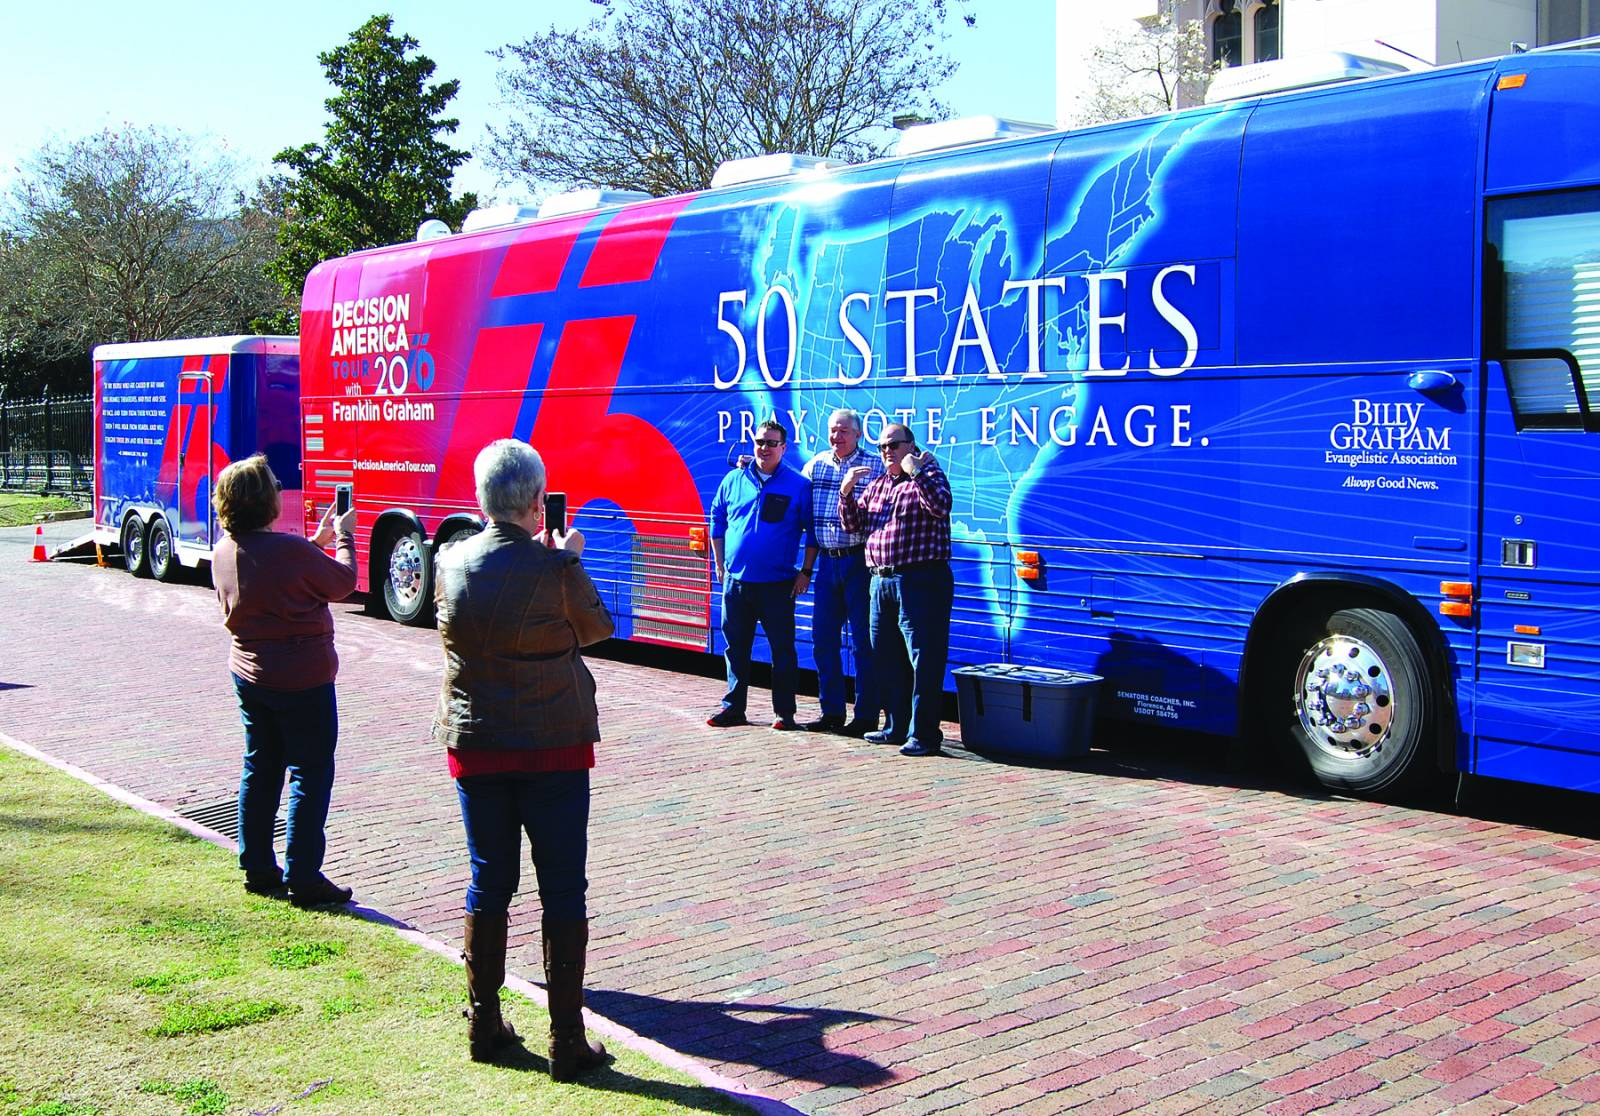 Ben Hackler, pastor of First Baptist Church Sterlington, his dad Dennis Hackler, and Sammy Morrow, pastor of Pleasant Hill Baptist Church in Pollock, pose for photos at one of two Franklin Graham Decision America Tour busses in downtown Baton Rouge on Jan. 13.